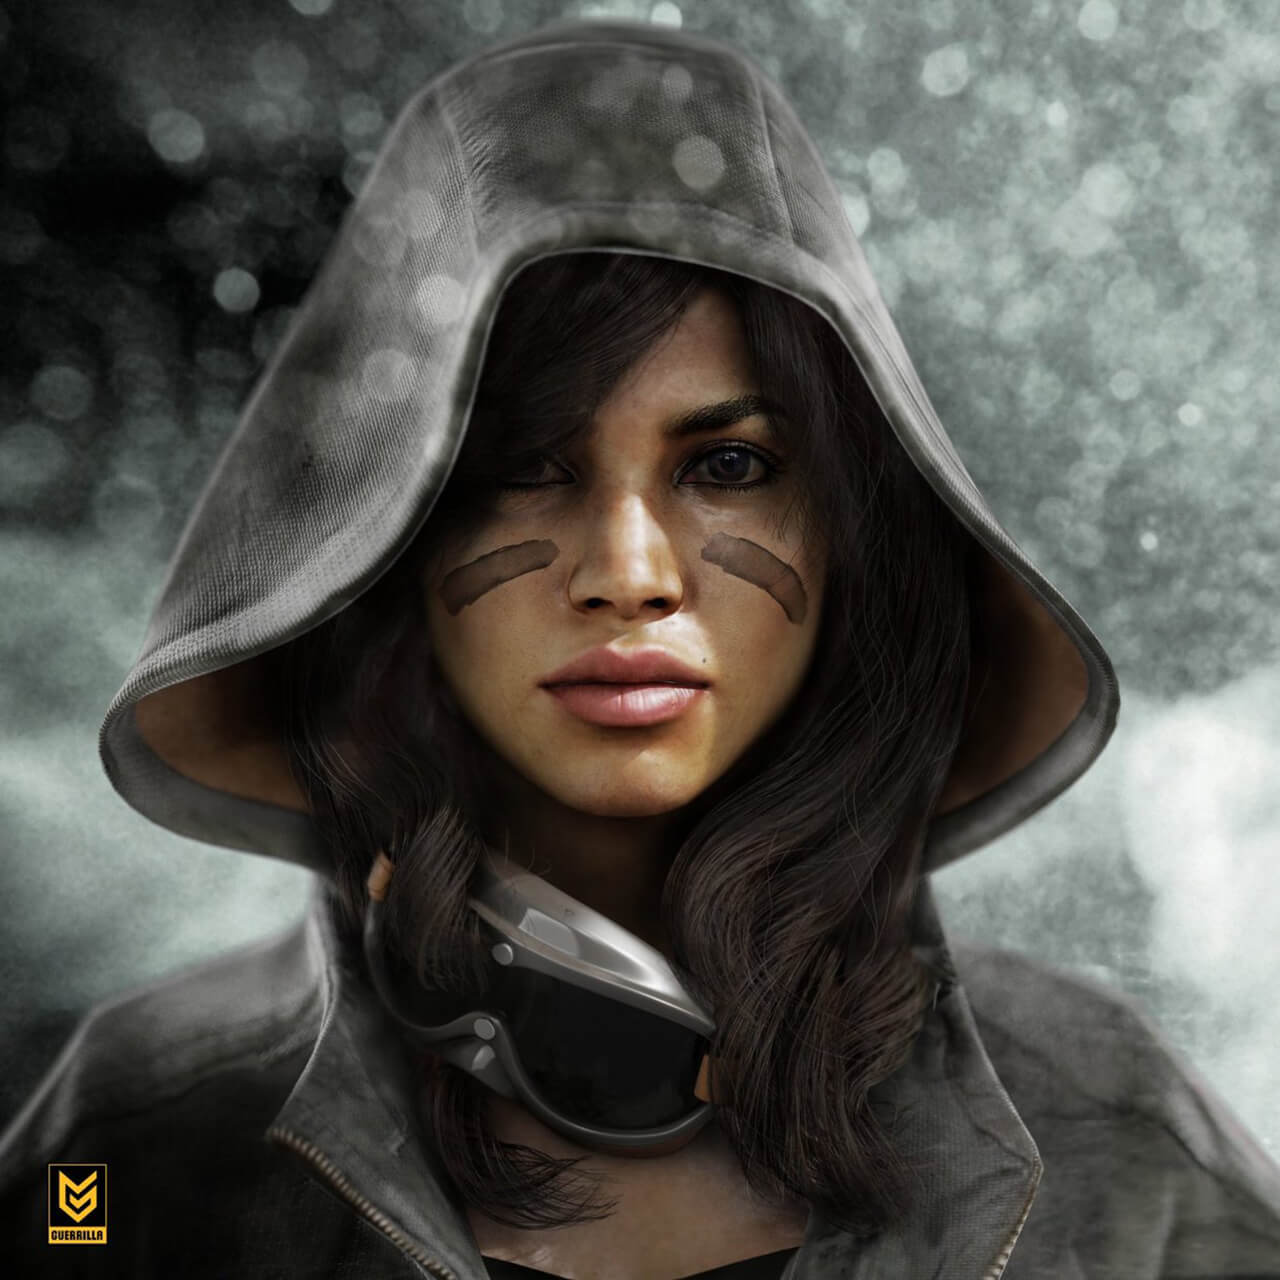 Computer generated female character for video game